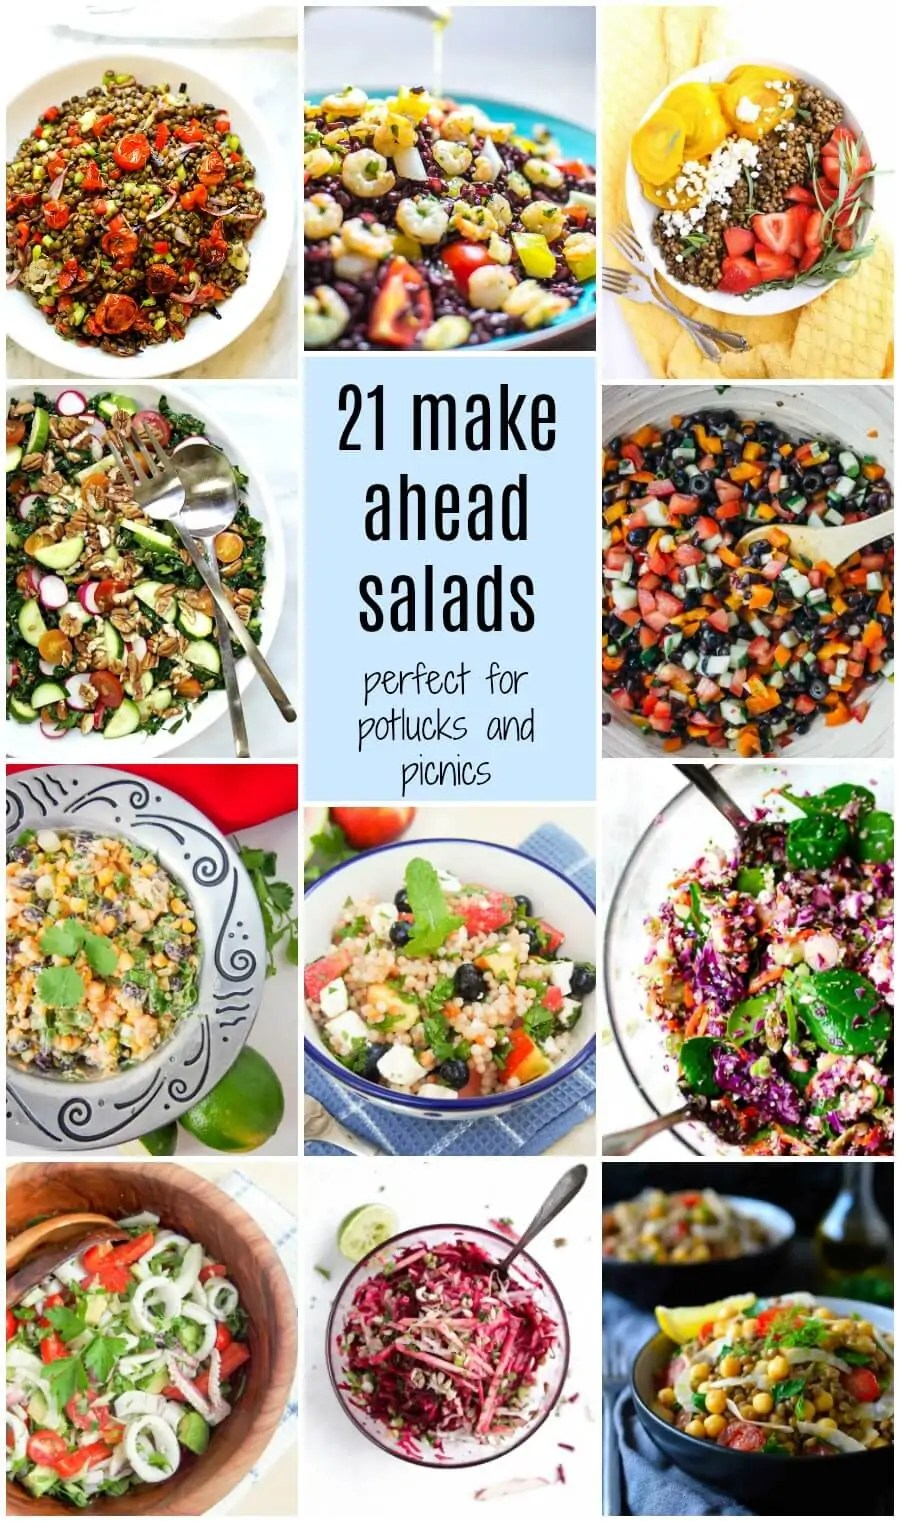 21 make ahead salads perfect for potlucks and picnics: Salads don't have to be limp and boring - this collection of 21 make ahead salads gives ideas perfect for potlucks, picnics and lunches full of color and flavor!